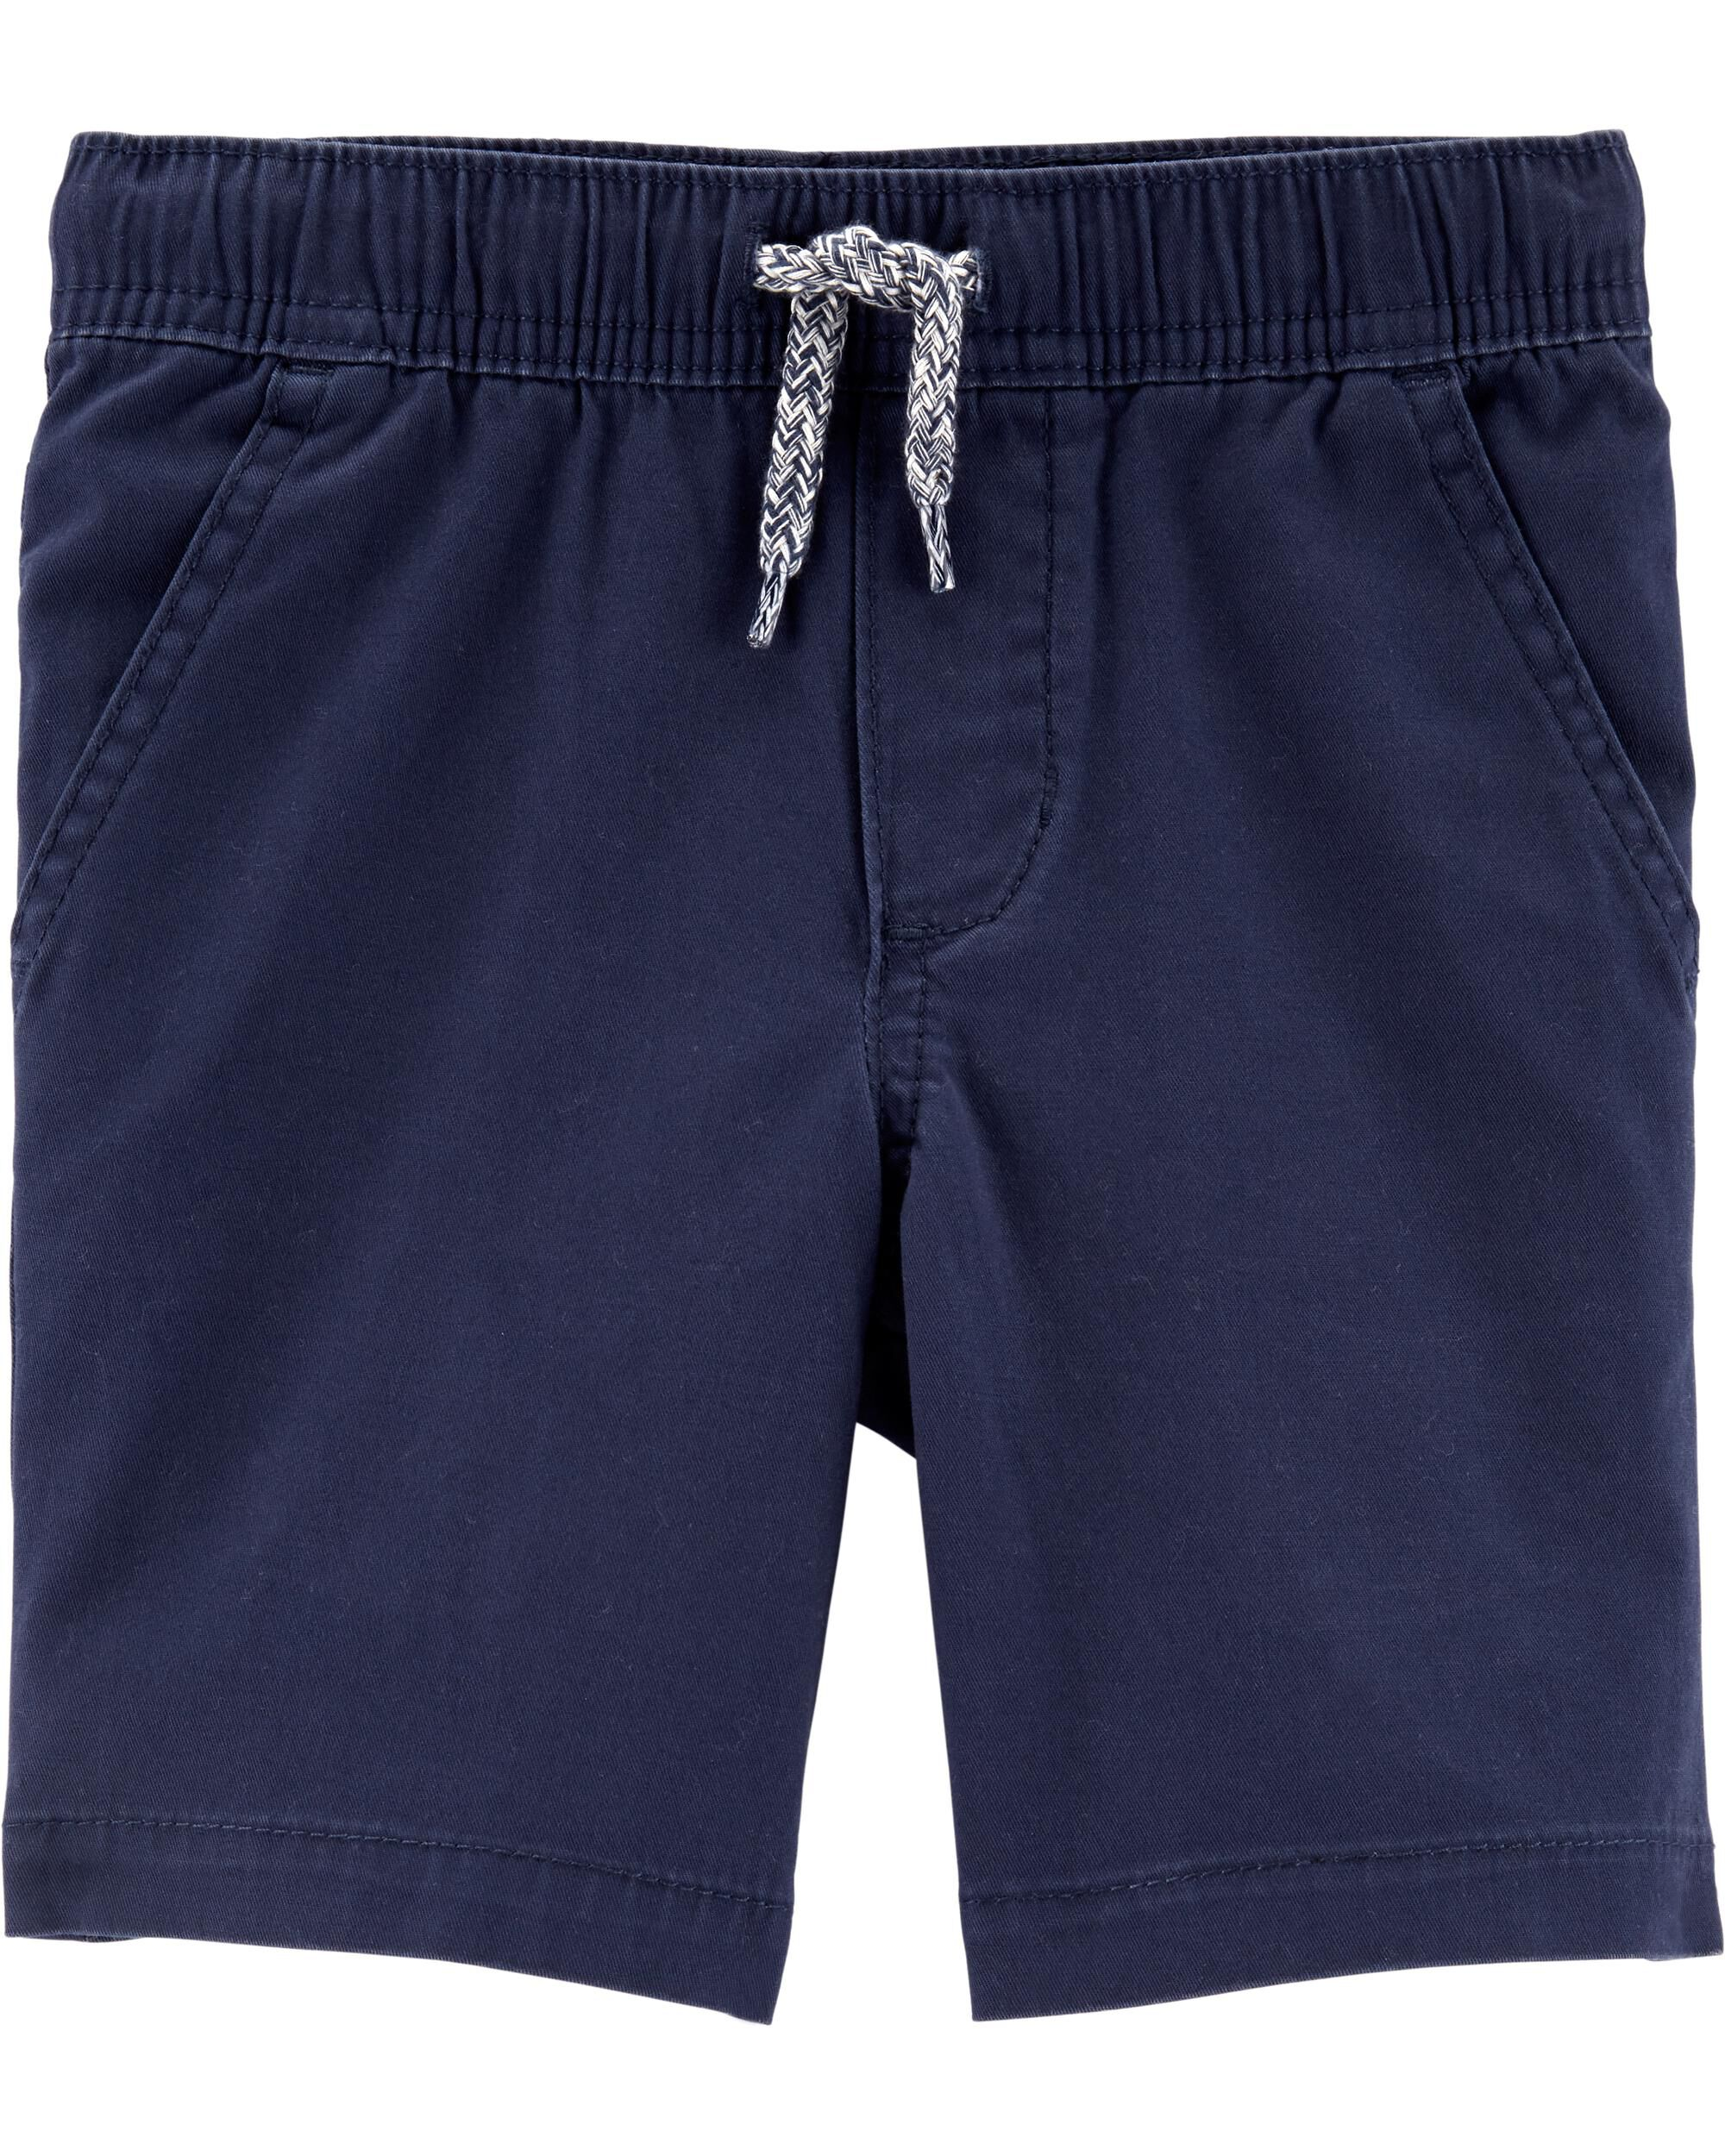 *Clearance*  Pull-On Super Stretch Twill Shorts